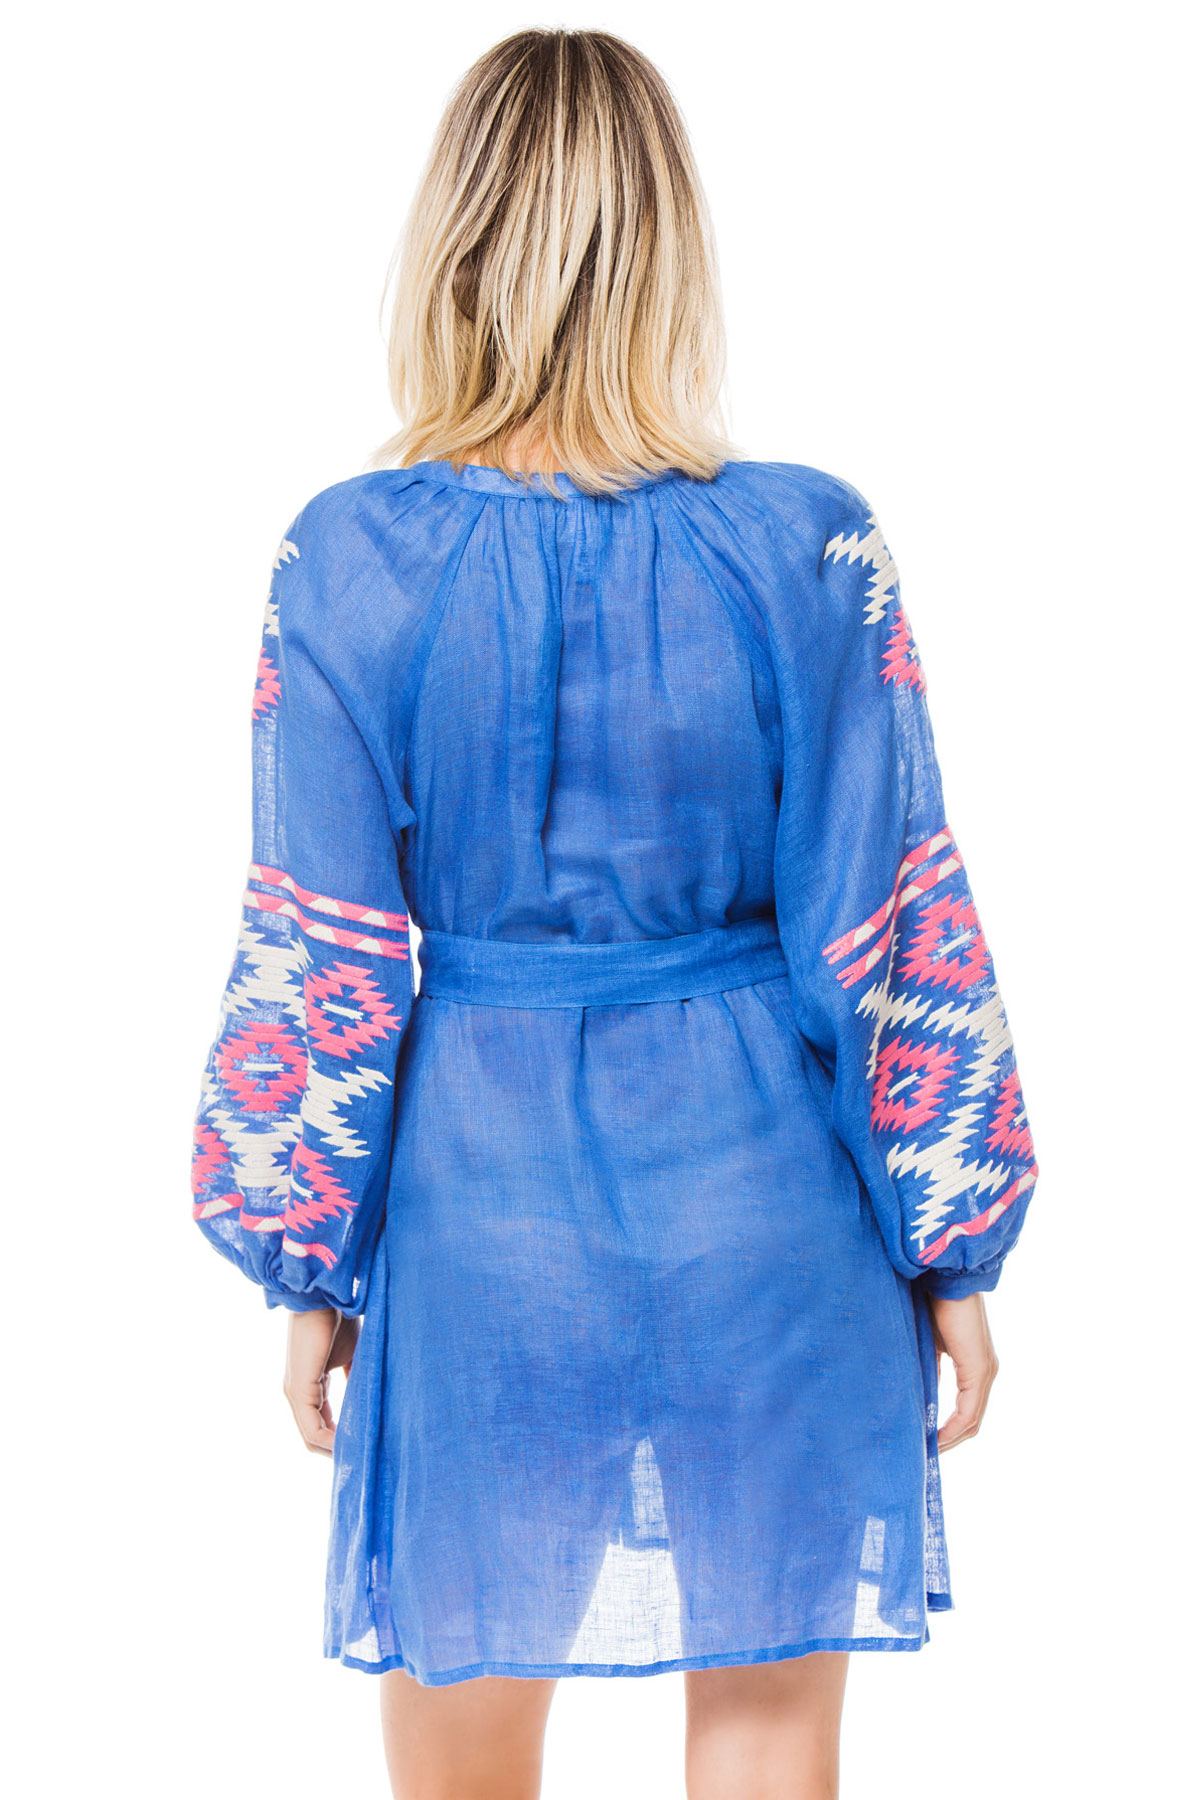 Istanbul Embroidered Mini Dress - Blue 2